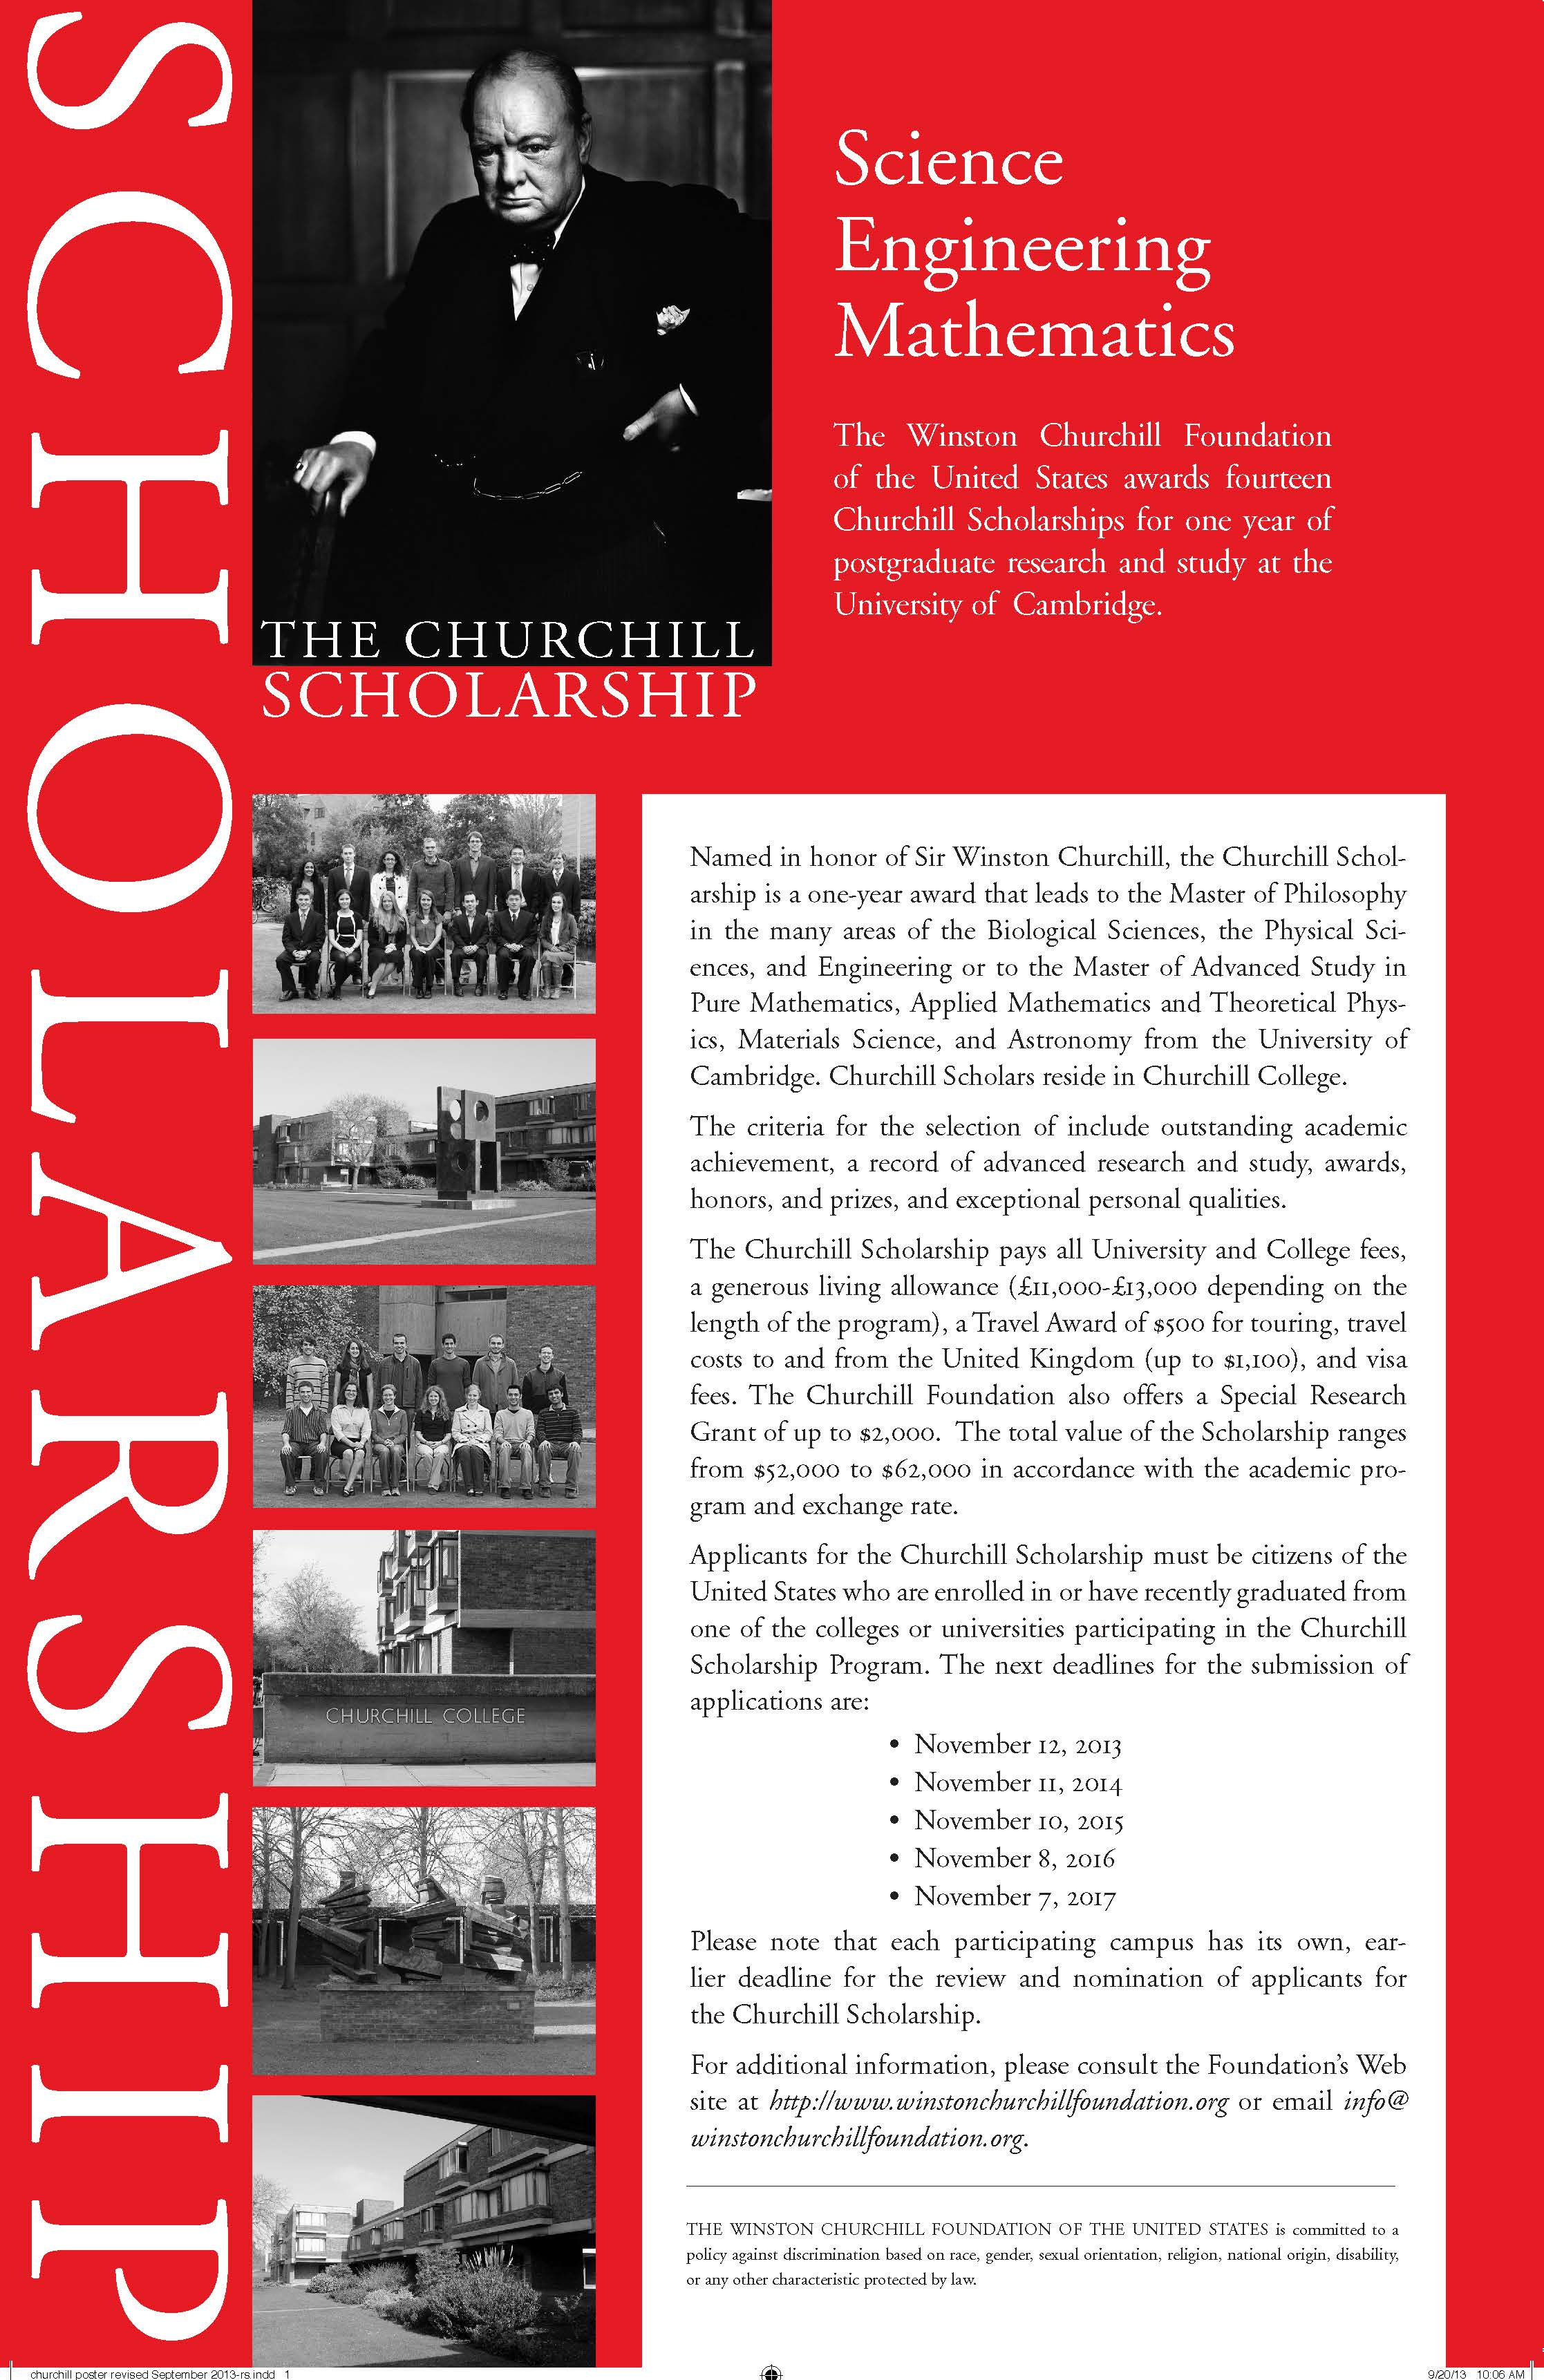 Which scholarships are least competitive?